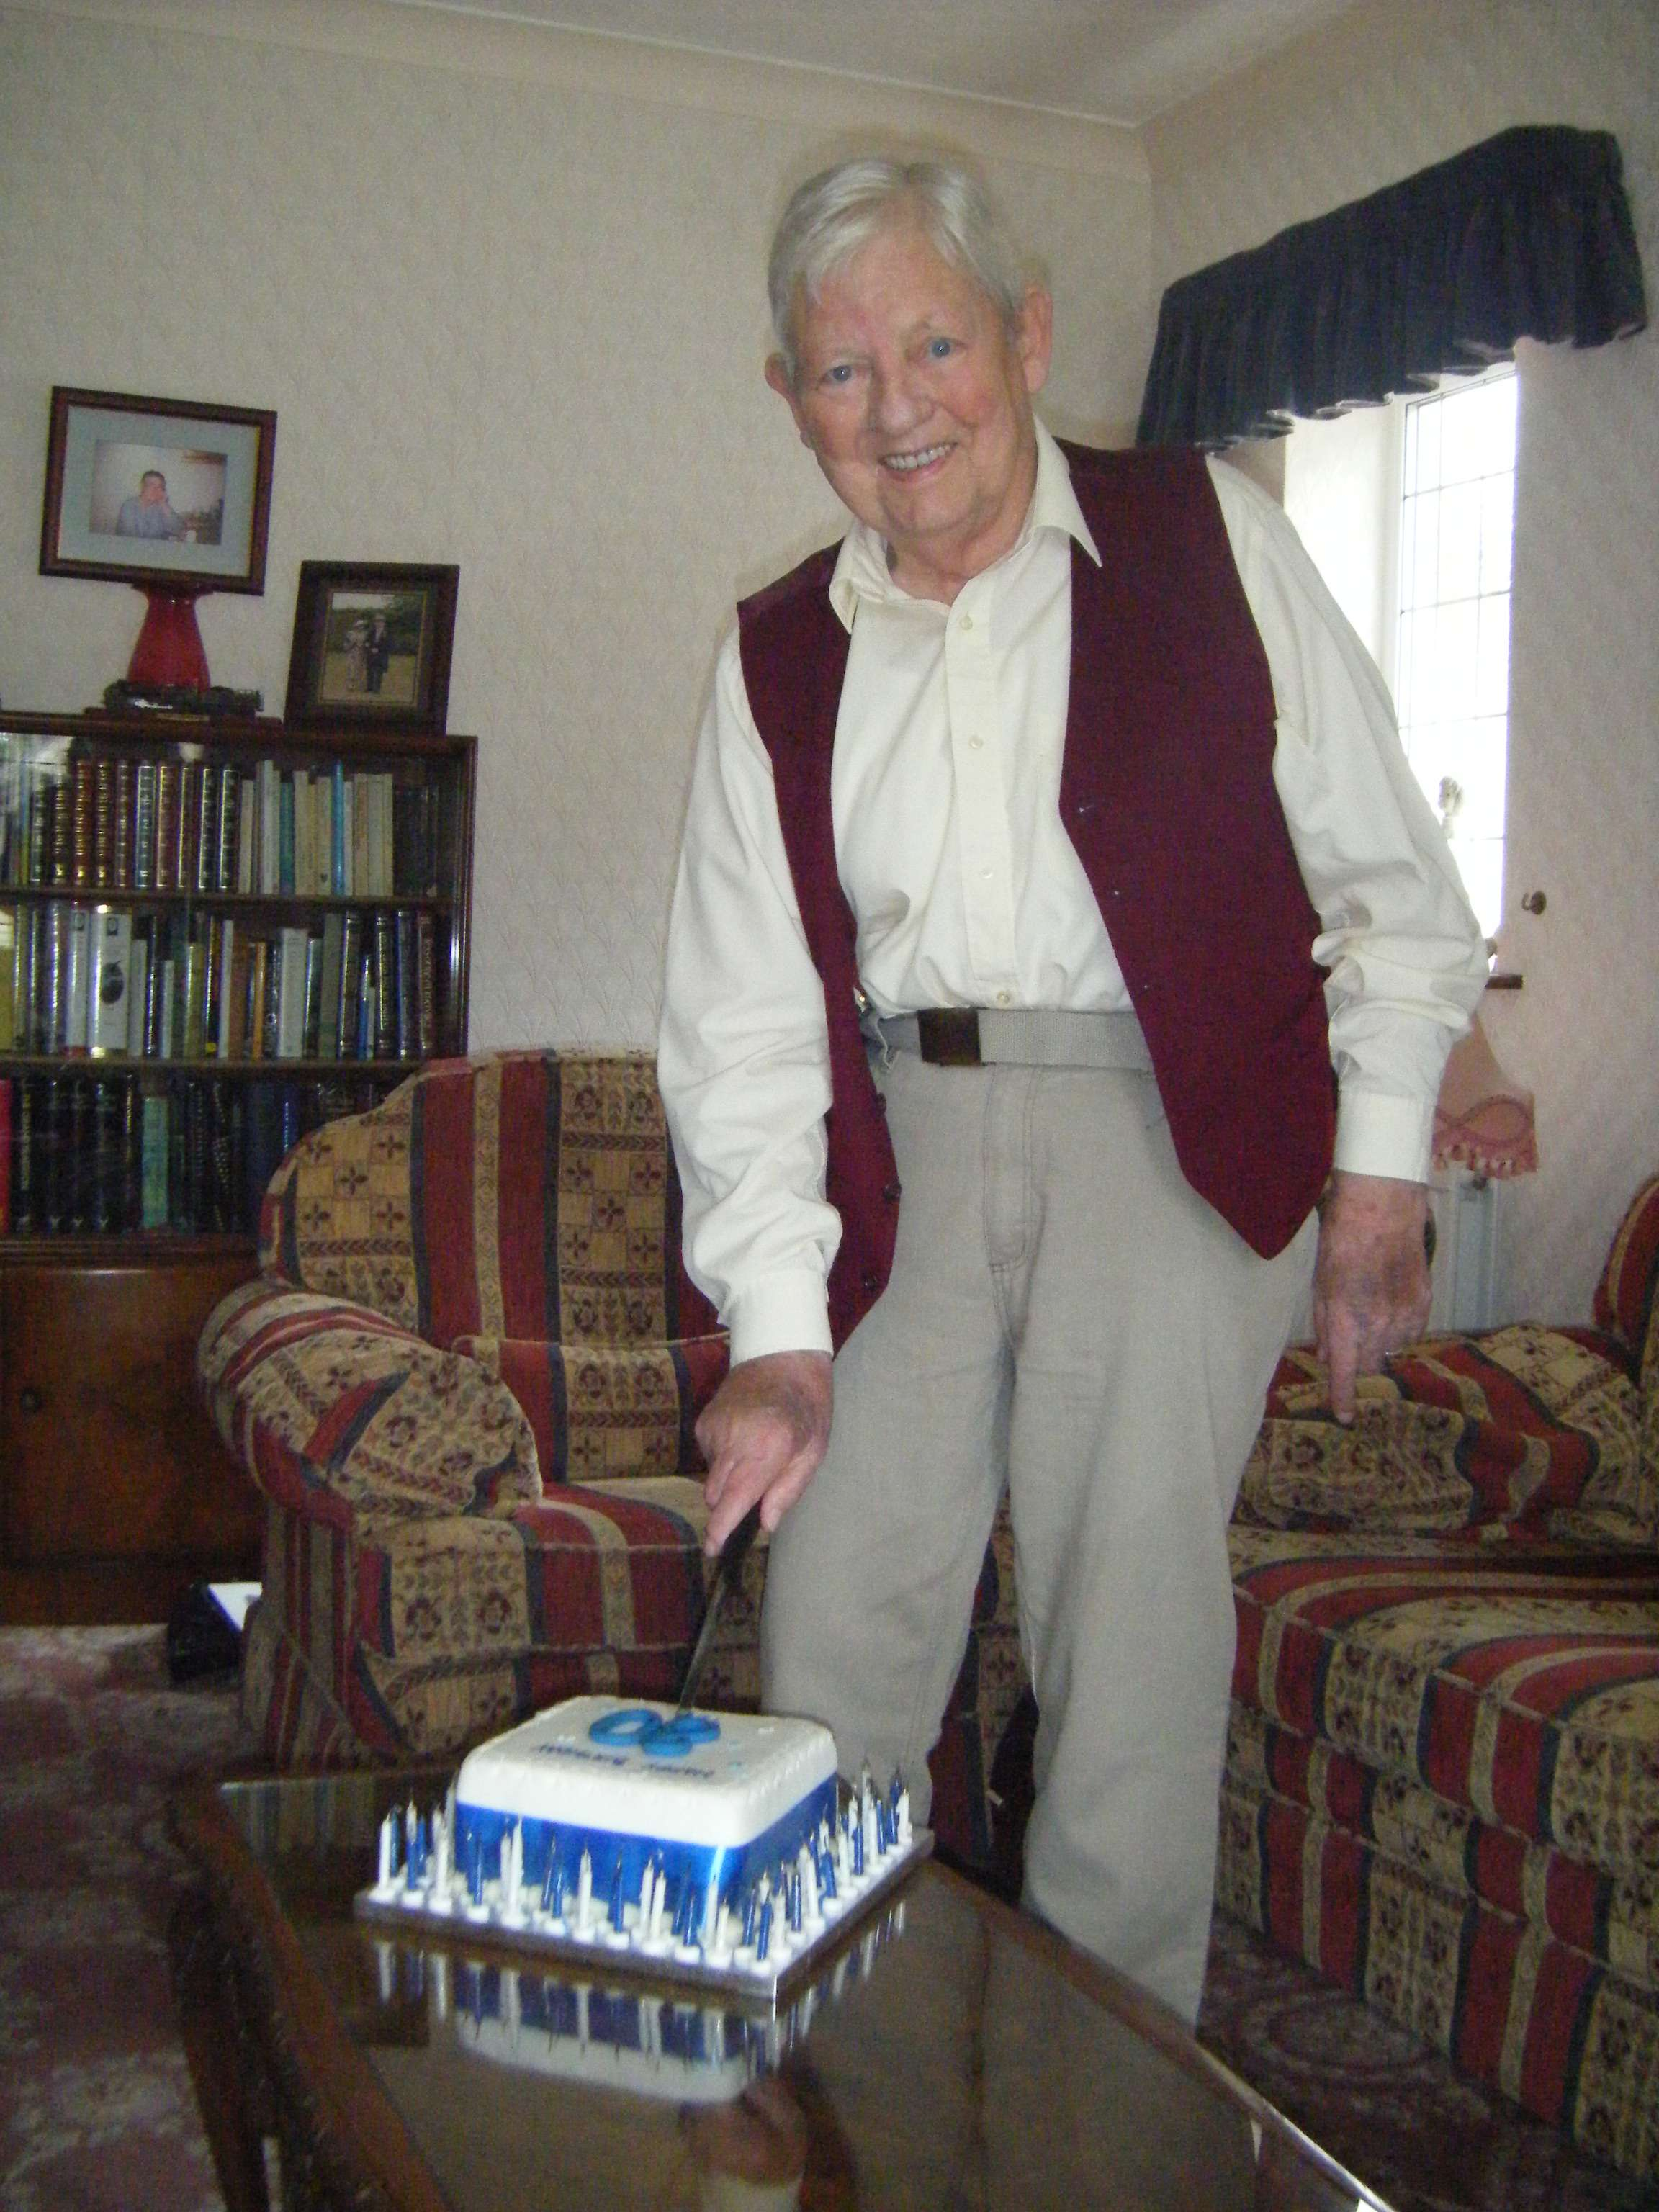 Ted, celebrating his 80th birthday